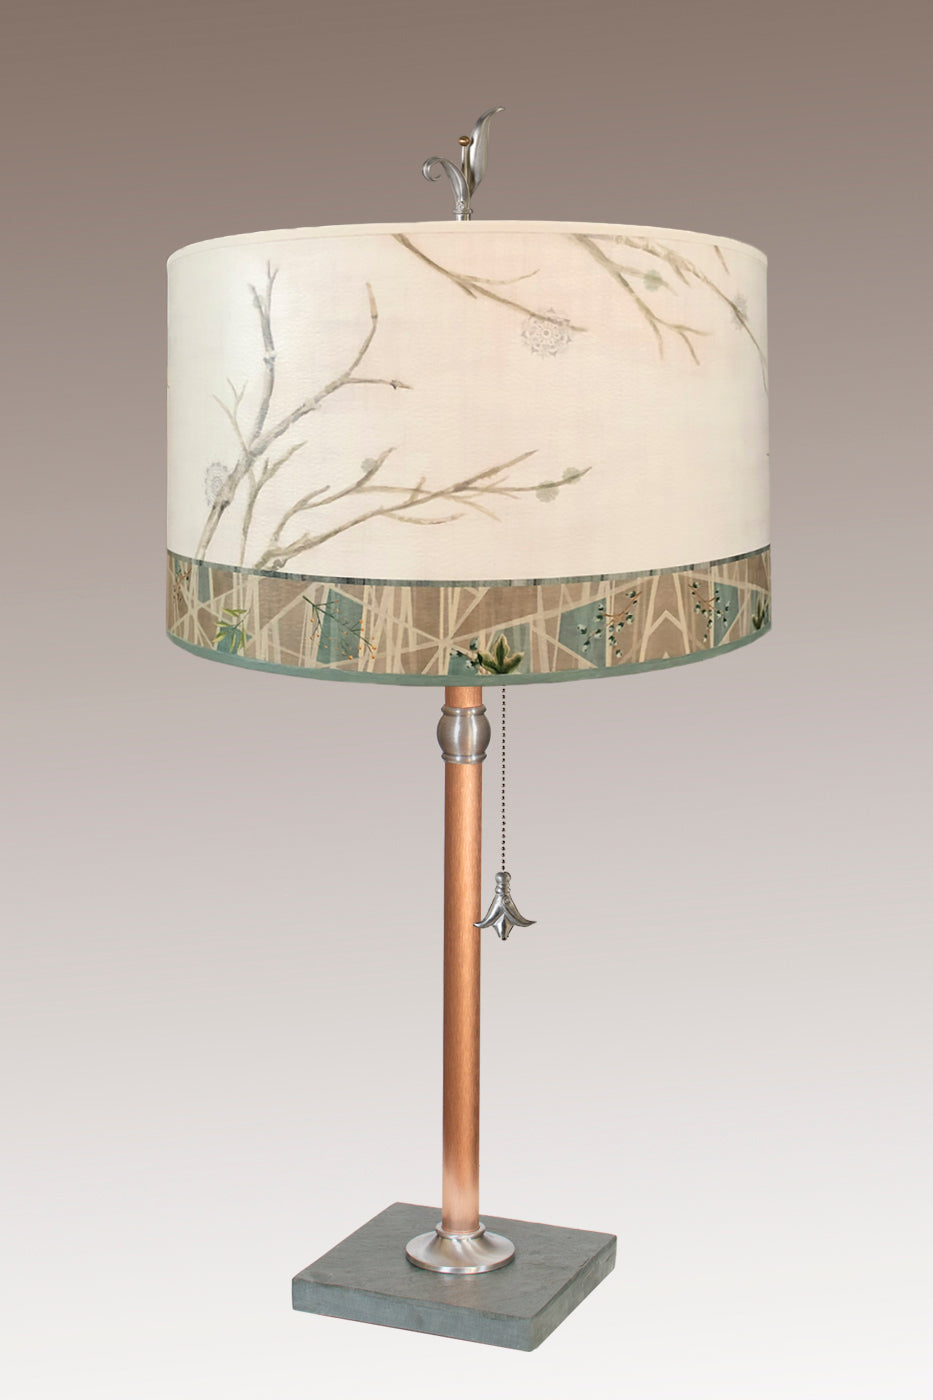 Copper Table Lamp with Large Drum Shade in Prism Branch